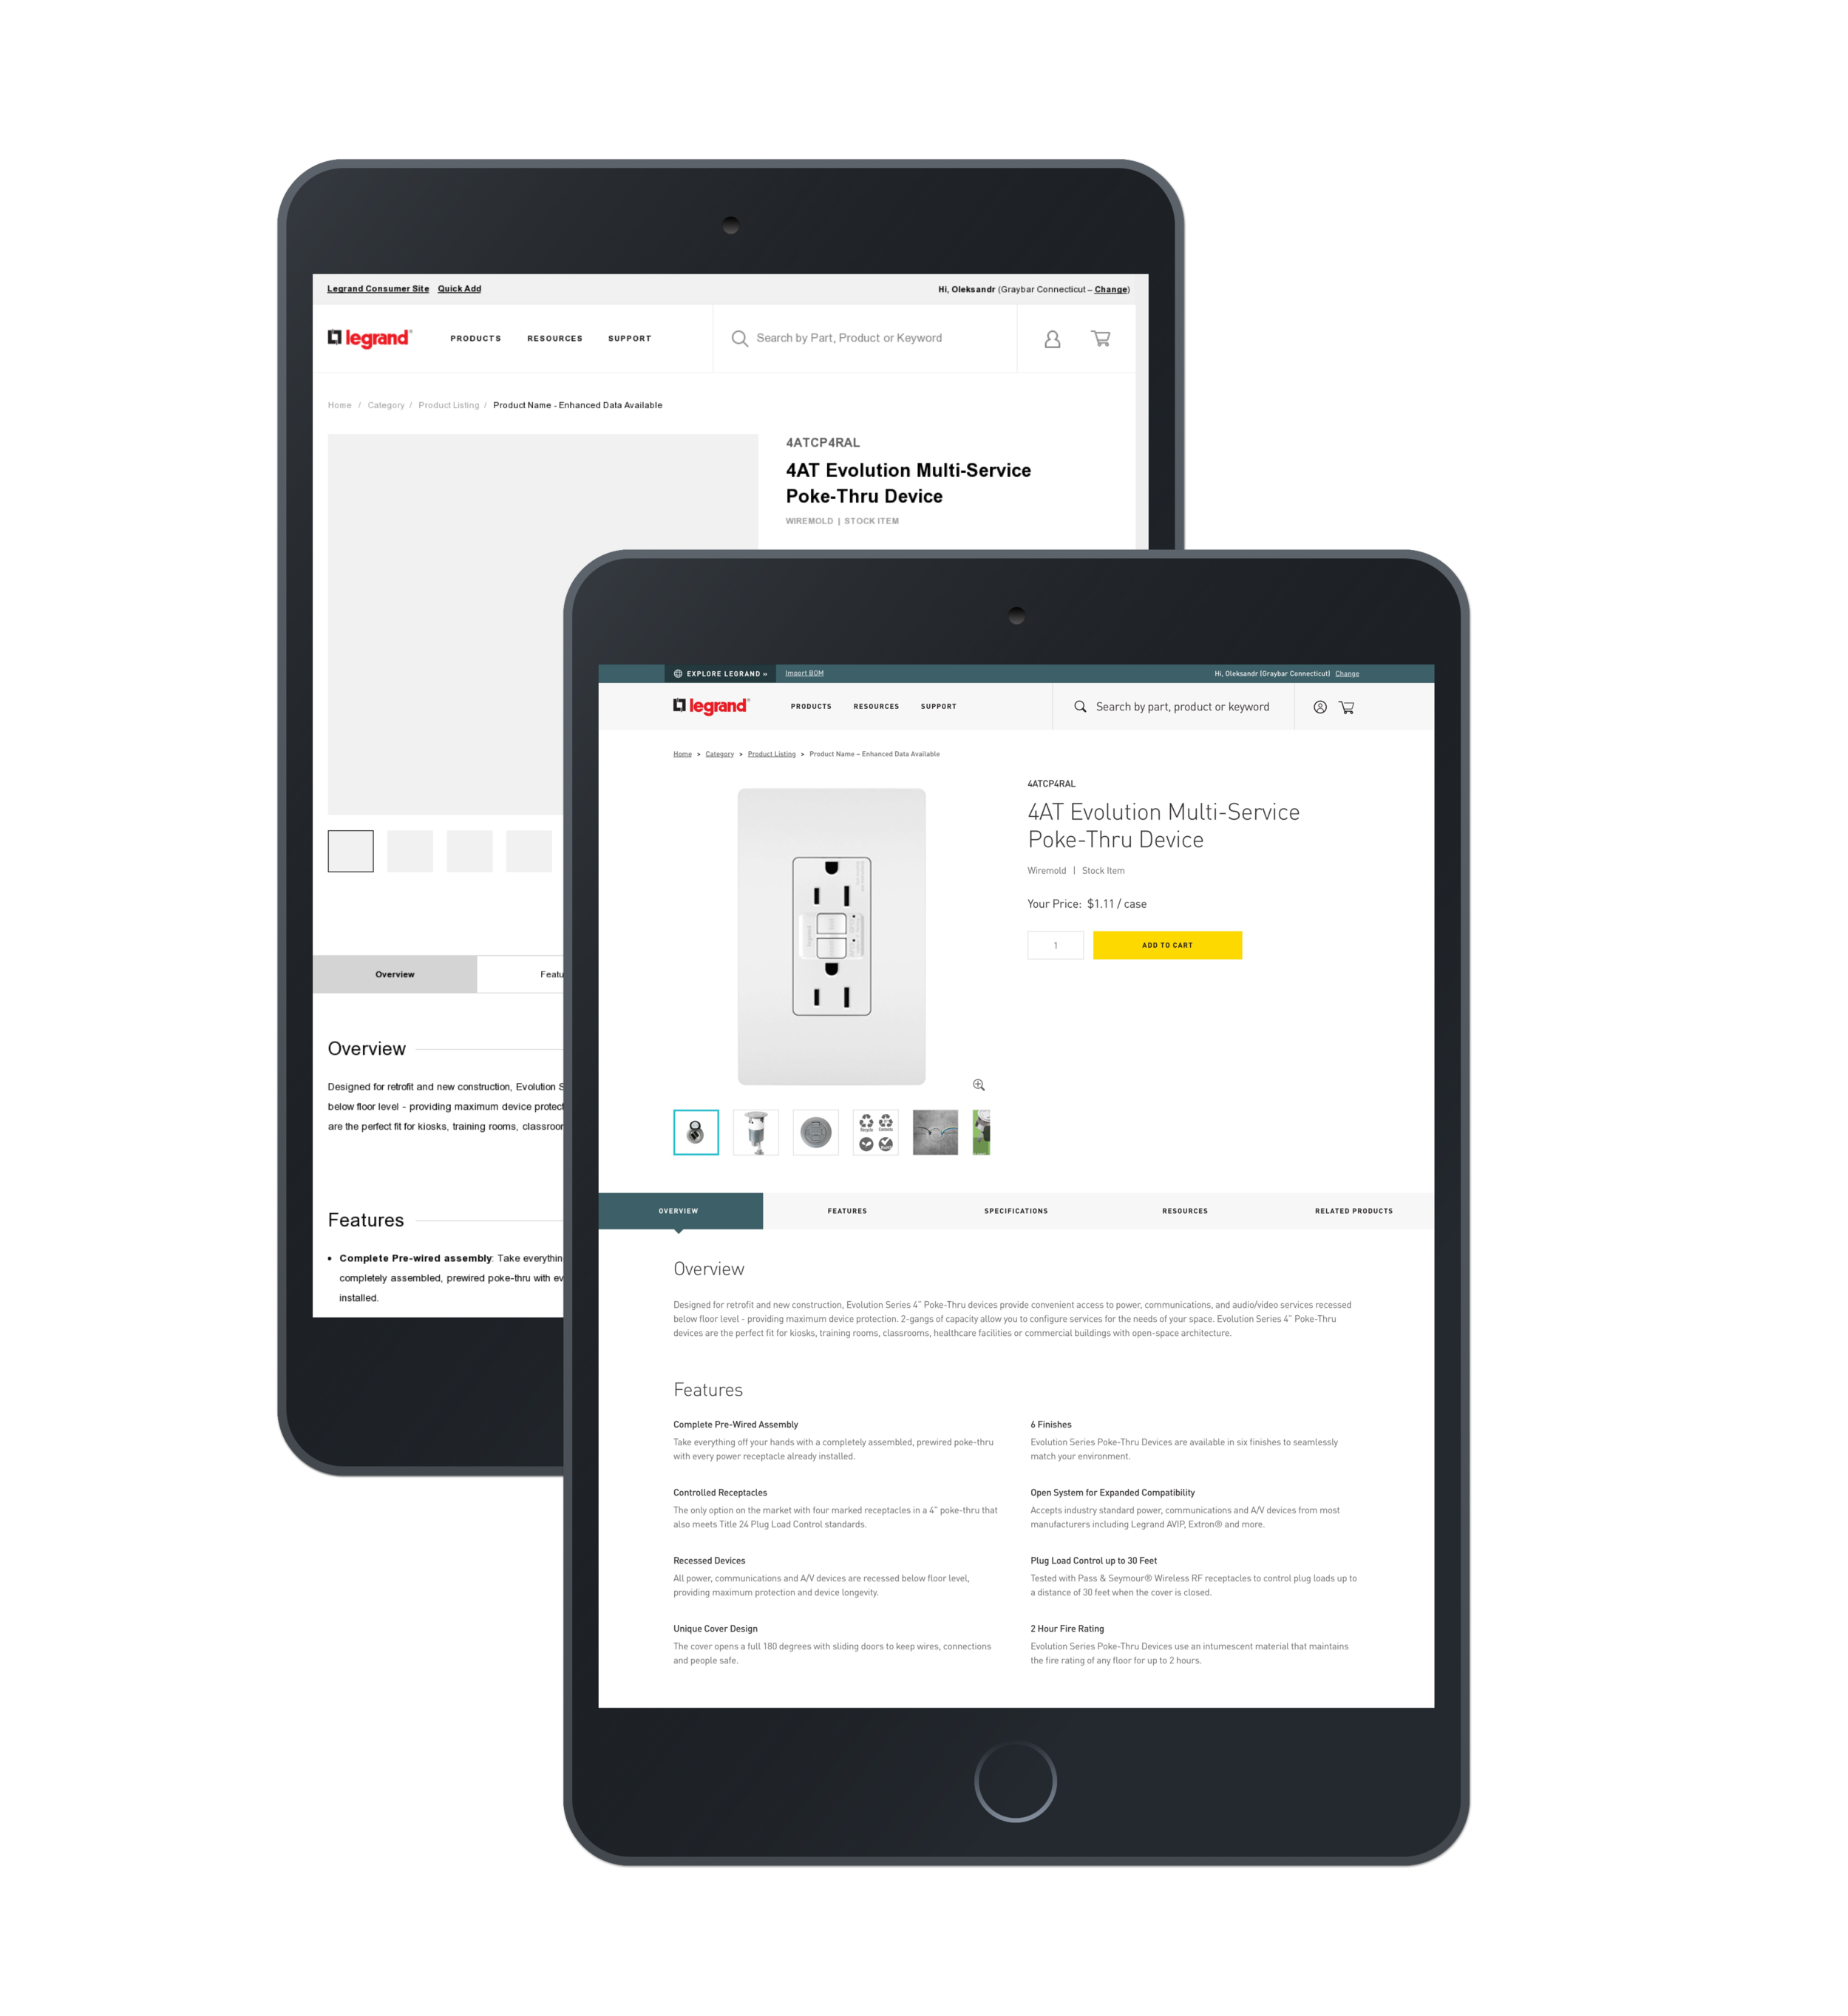 Full Product Detail Page - The PDP created for Legrand contained a lot of variable parts. Shown to the right was an example of a full PDP utilizing all potential options. The simpler option would sections of content based on available data pulled from the product list database.